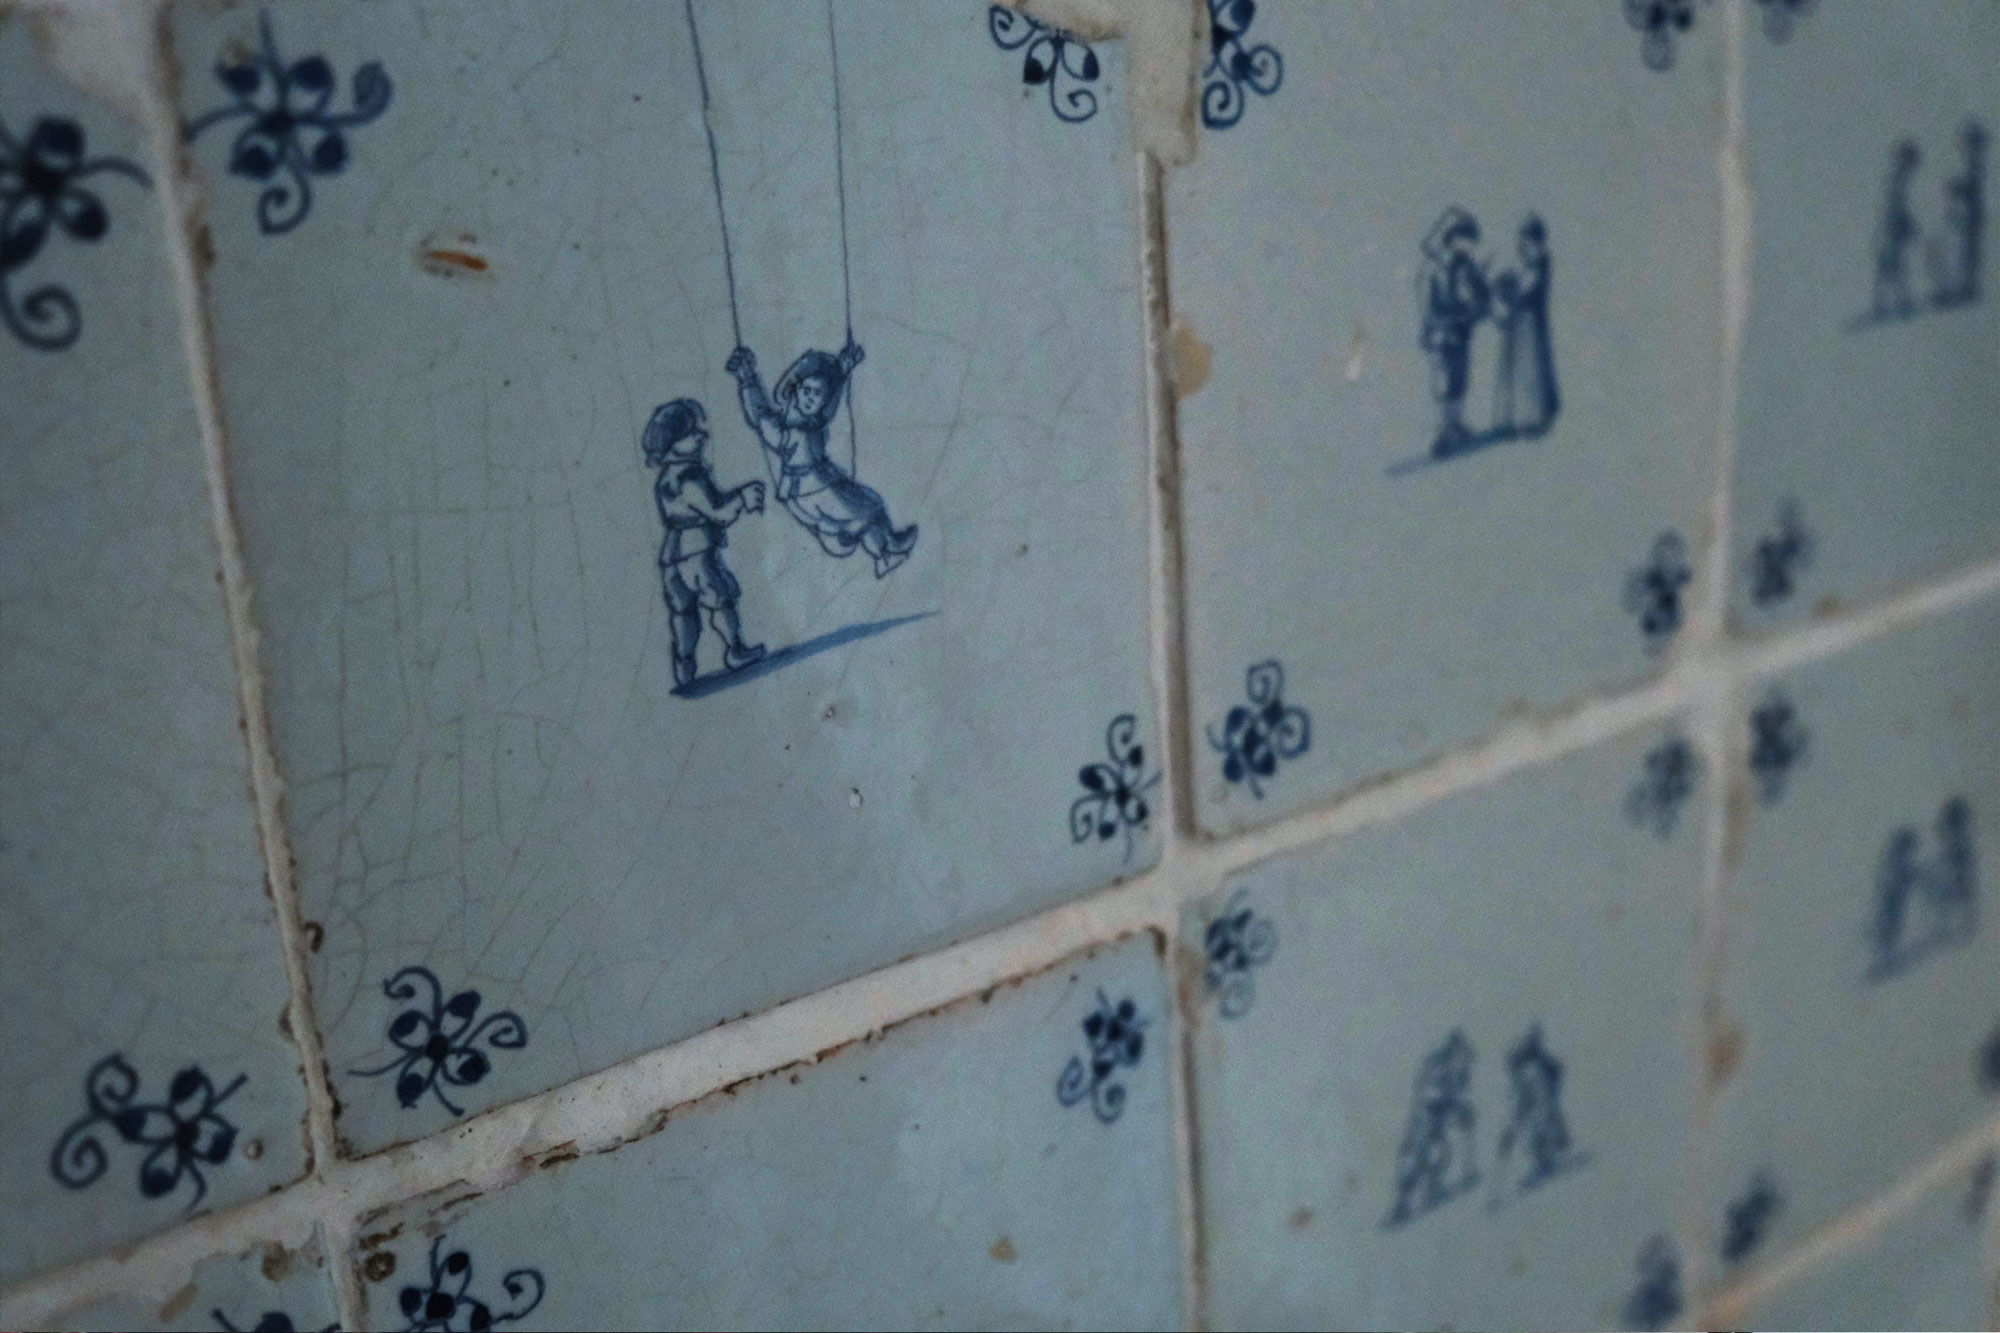 Antique Tiles - At Kramer Antique you can find a great collection of antiques. With their 70 year history of selling antiques and their long-term experience, they have established their name within the Spiegelkwartier art district of Amsterdam.This bathroom wall is decorated with white glazed tiles from the seventeenth and eighteenth century. The tiles with a figure date from the years 1660 to 1680 and were made for Amsterdam canal houses. Usually they were seen inside kitchens, fire places and lavatories. Not a single white tile has the same coloration, creating a lively appearance on the wall.